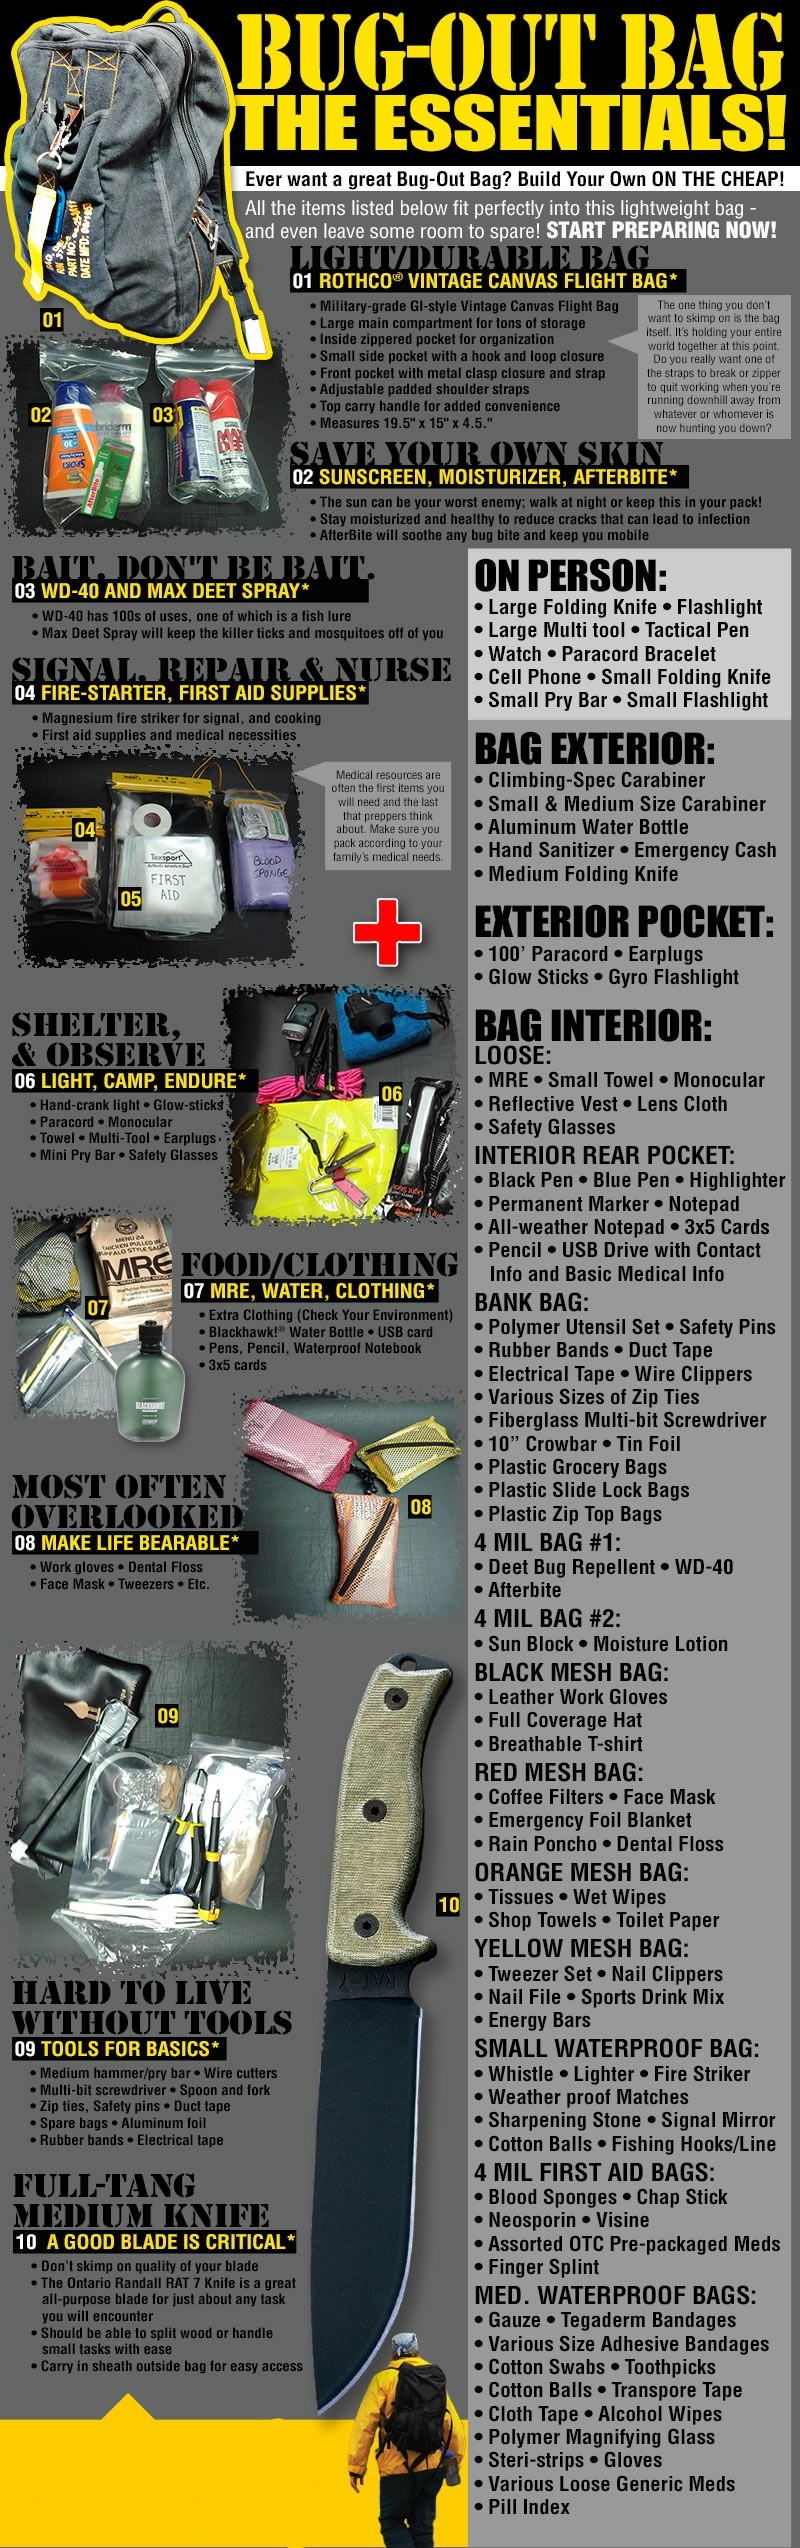 Bug-Out-Bag essentials